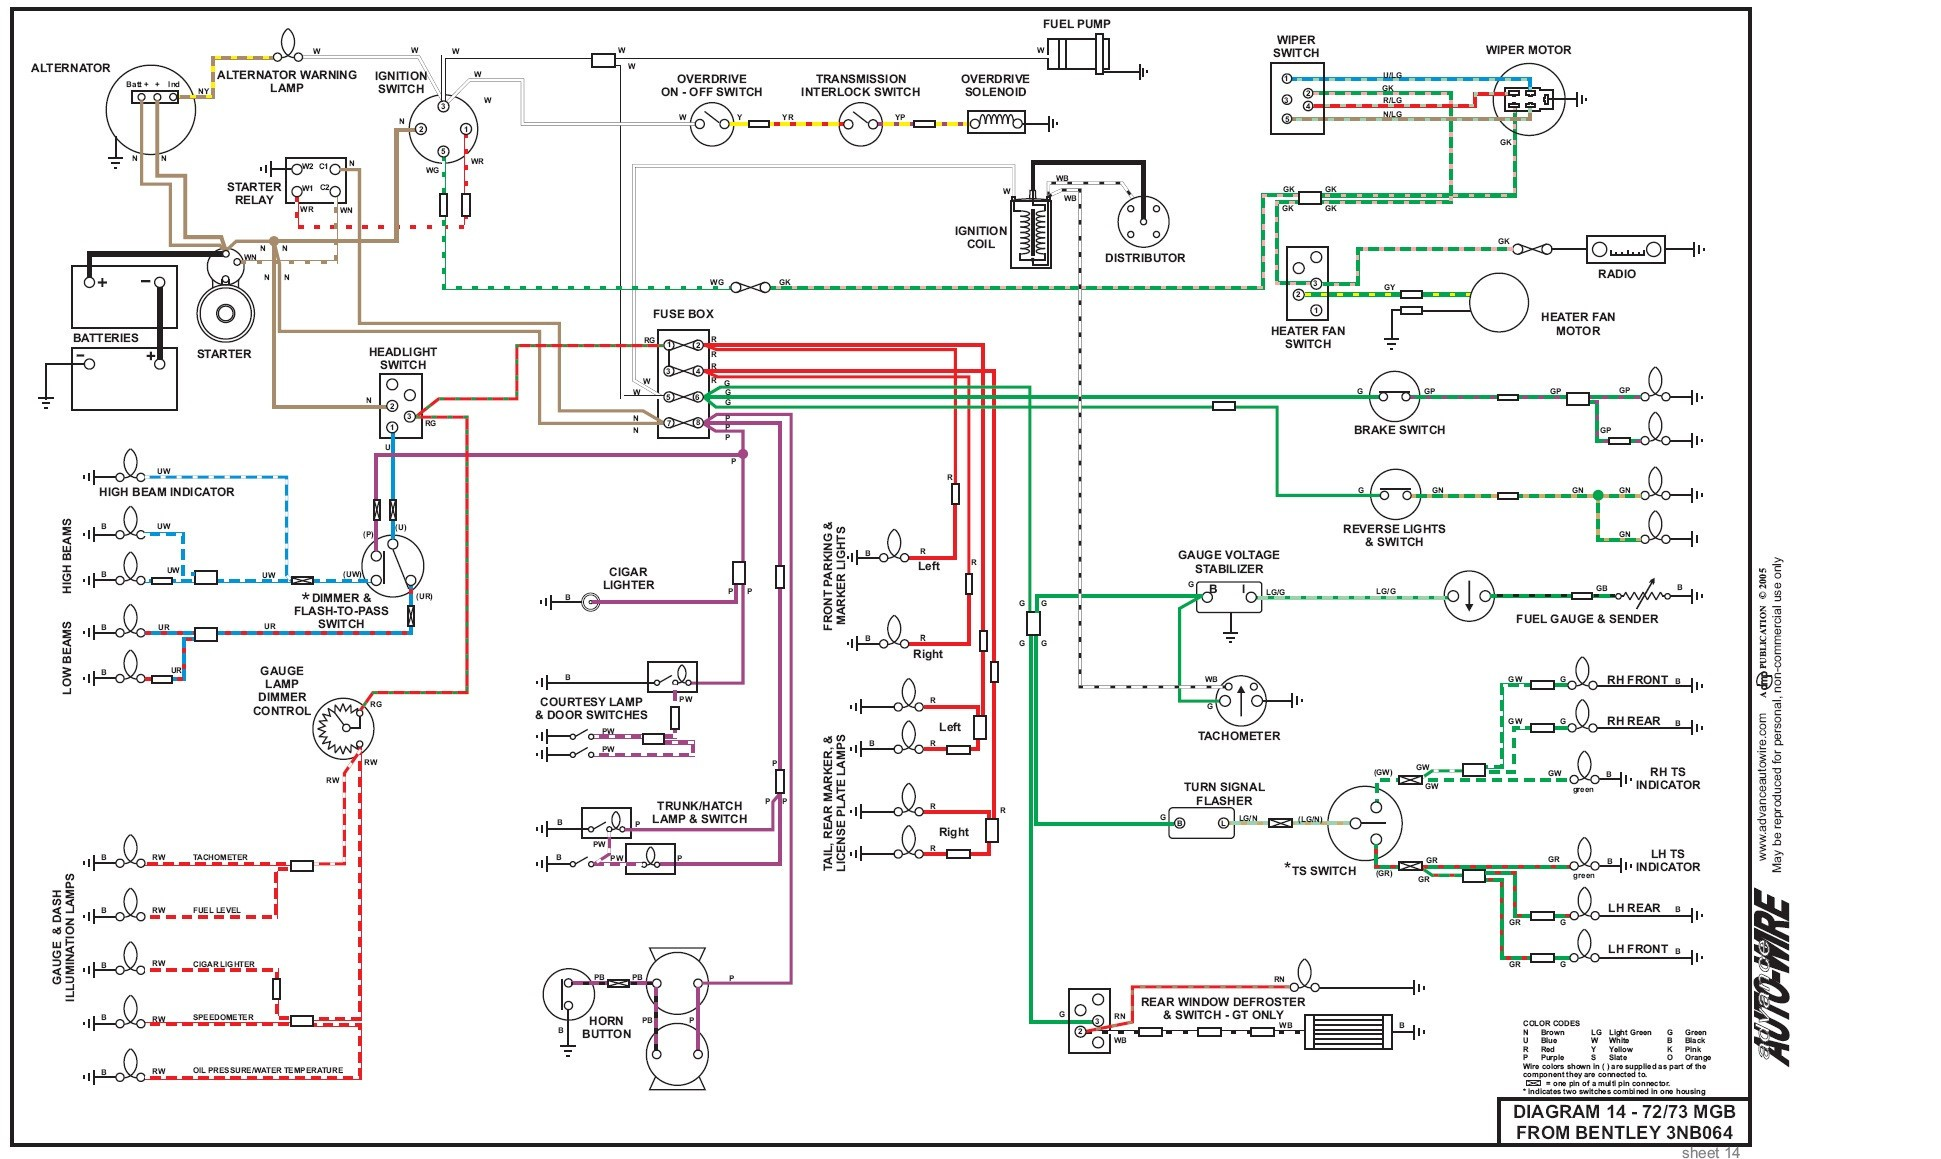 1972 Mgb Wiring Diagram | schematic and wiring diagram